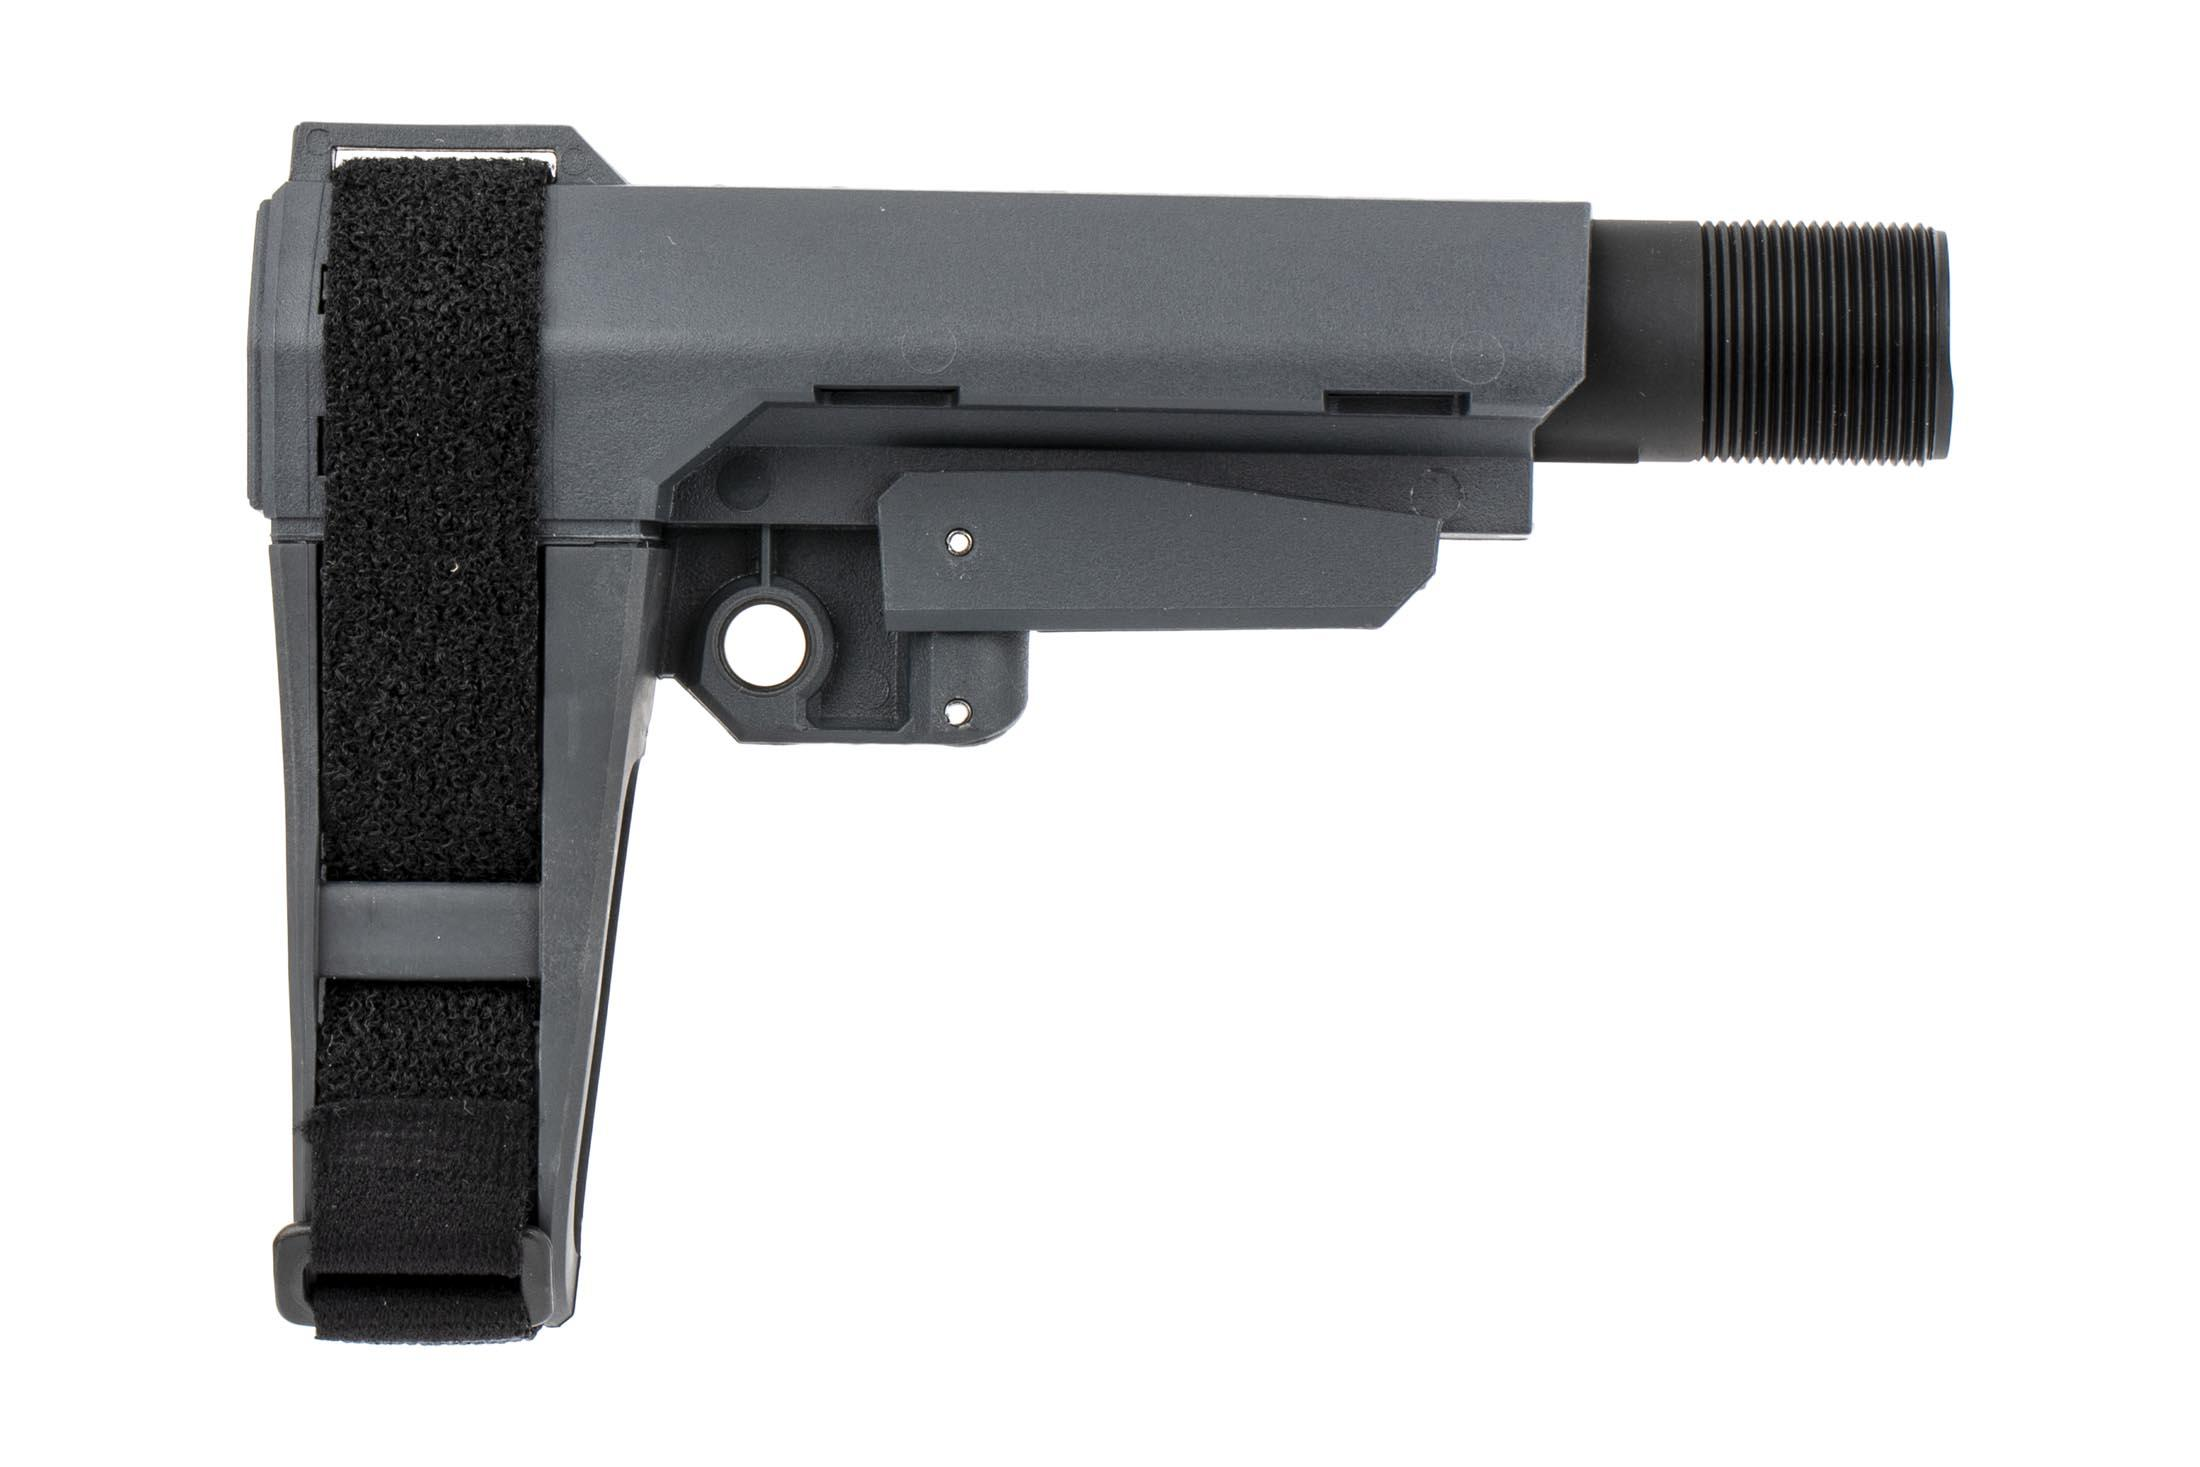 The SB Tactical SBA3 pistol brace features a stealth grey polymer and rubber construction